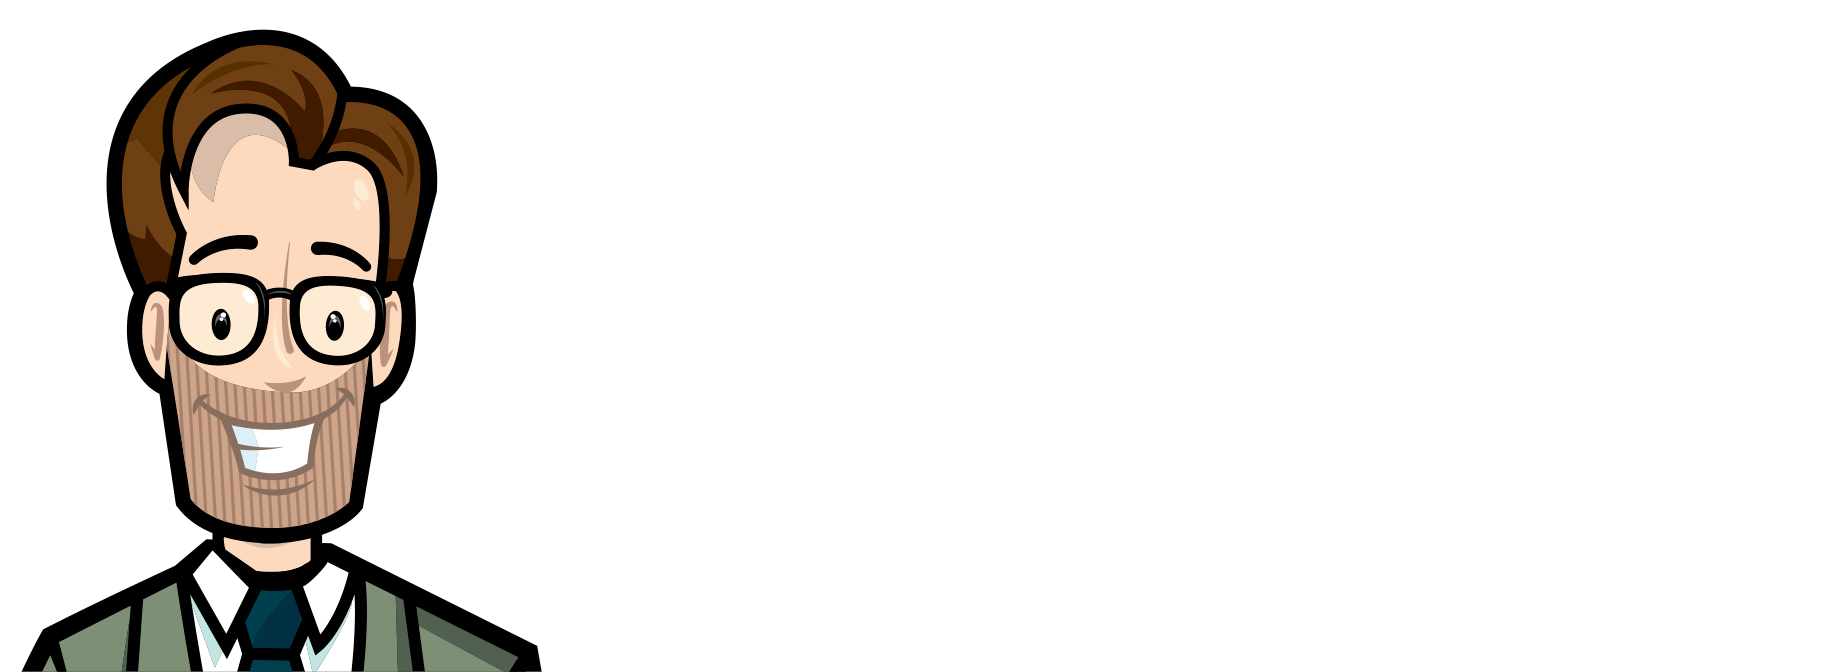 The Digital Masterclass